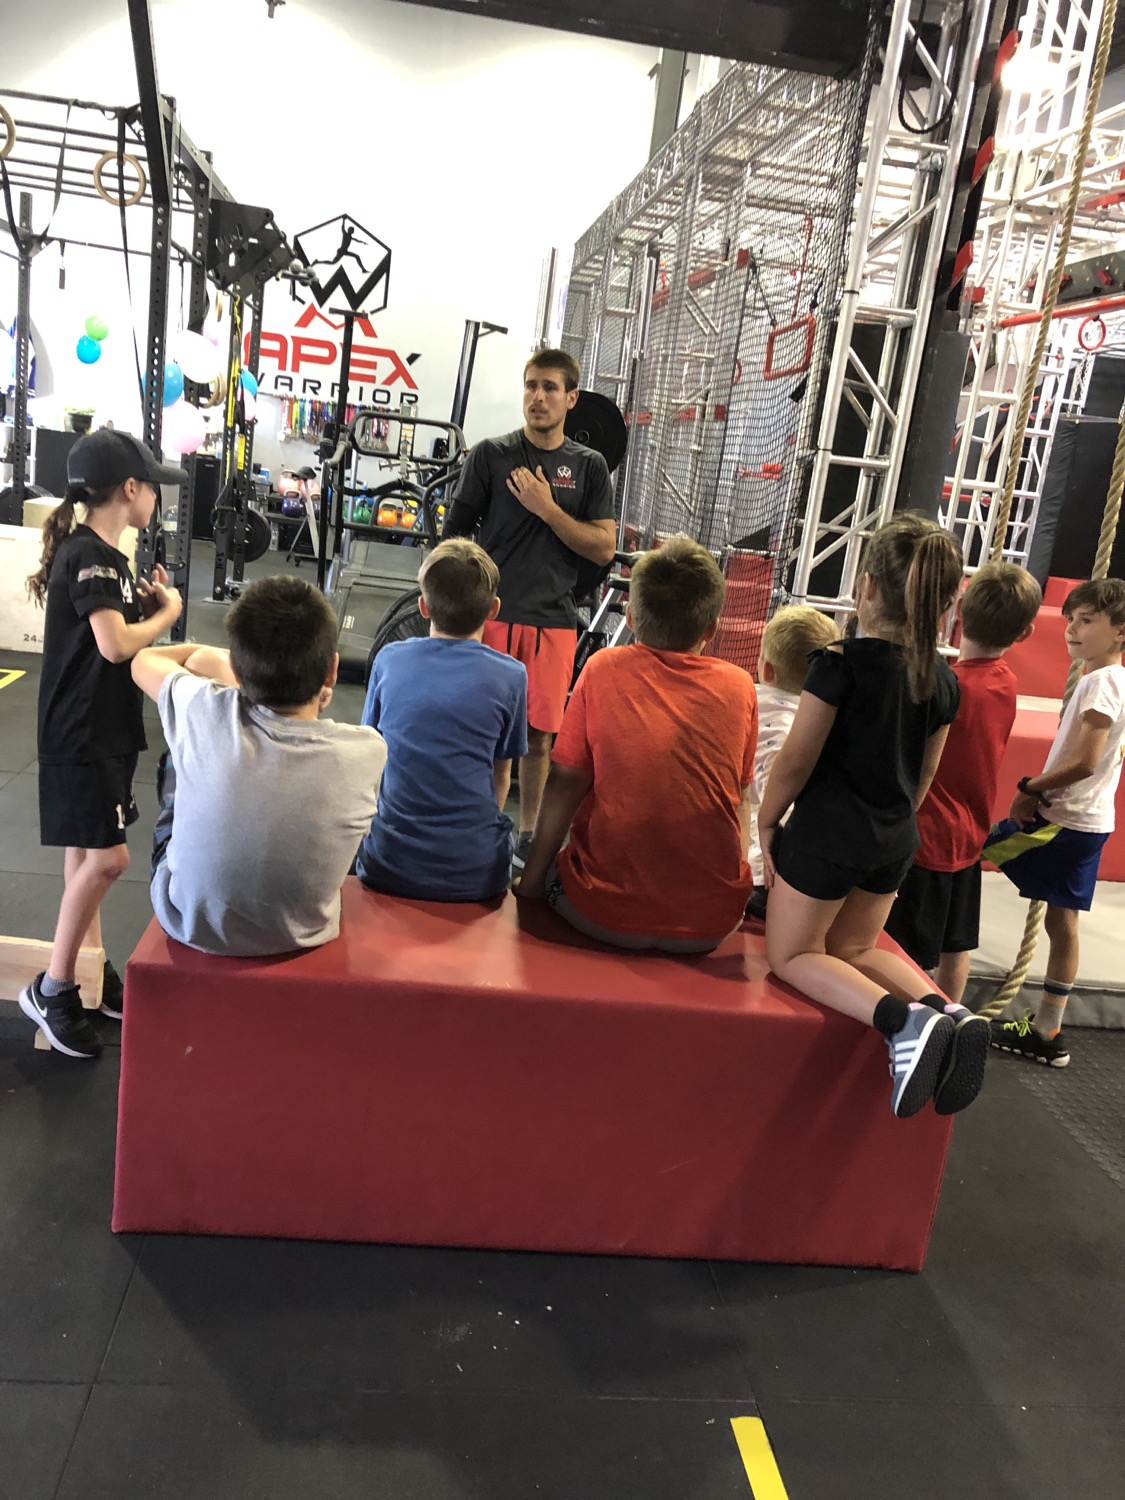 Kids in the gym